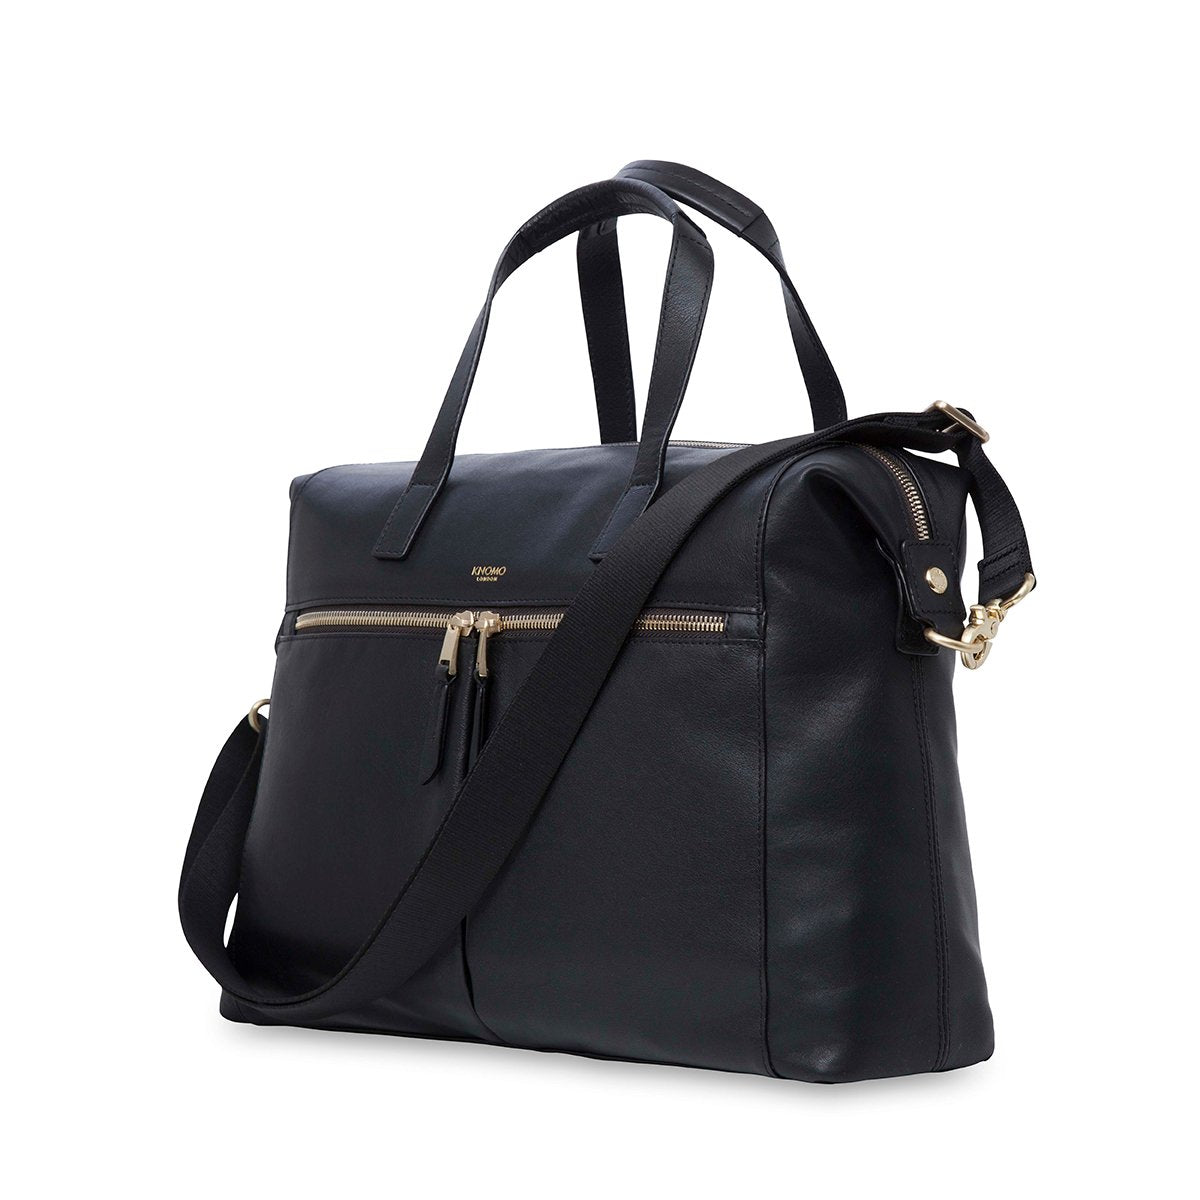 "KNOMO Audley Laptop Handbag Three Quarter View With Strap 14"" -  Black 